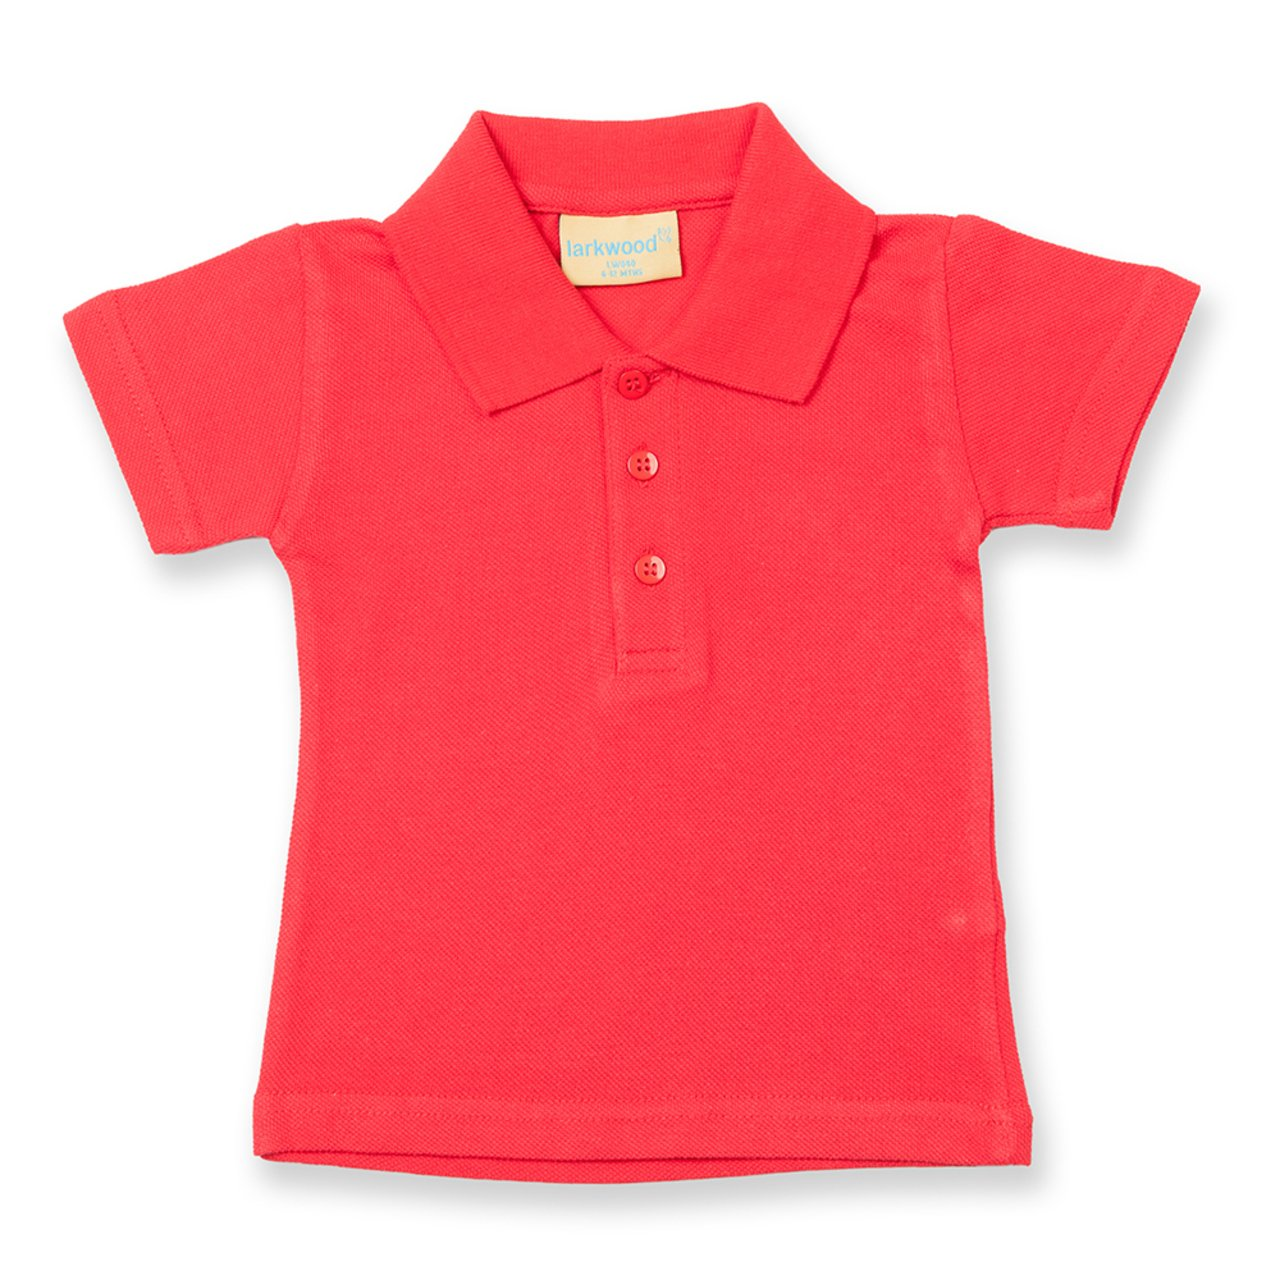 Larkwood New Baby/Toddler Hemmed Sleeves Polo Three Button Placket Shirt